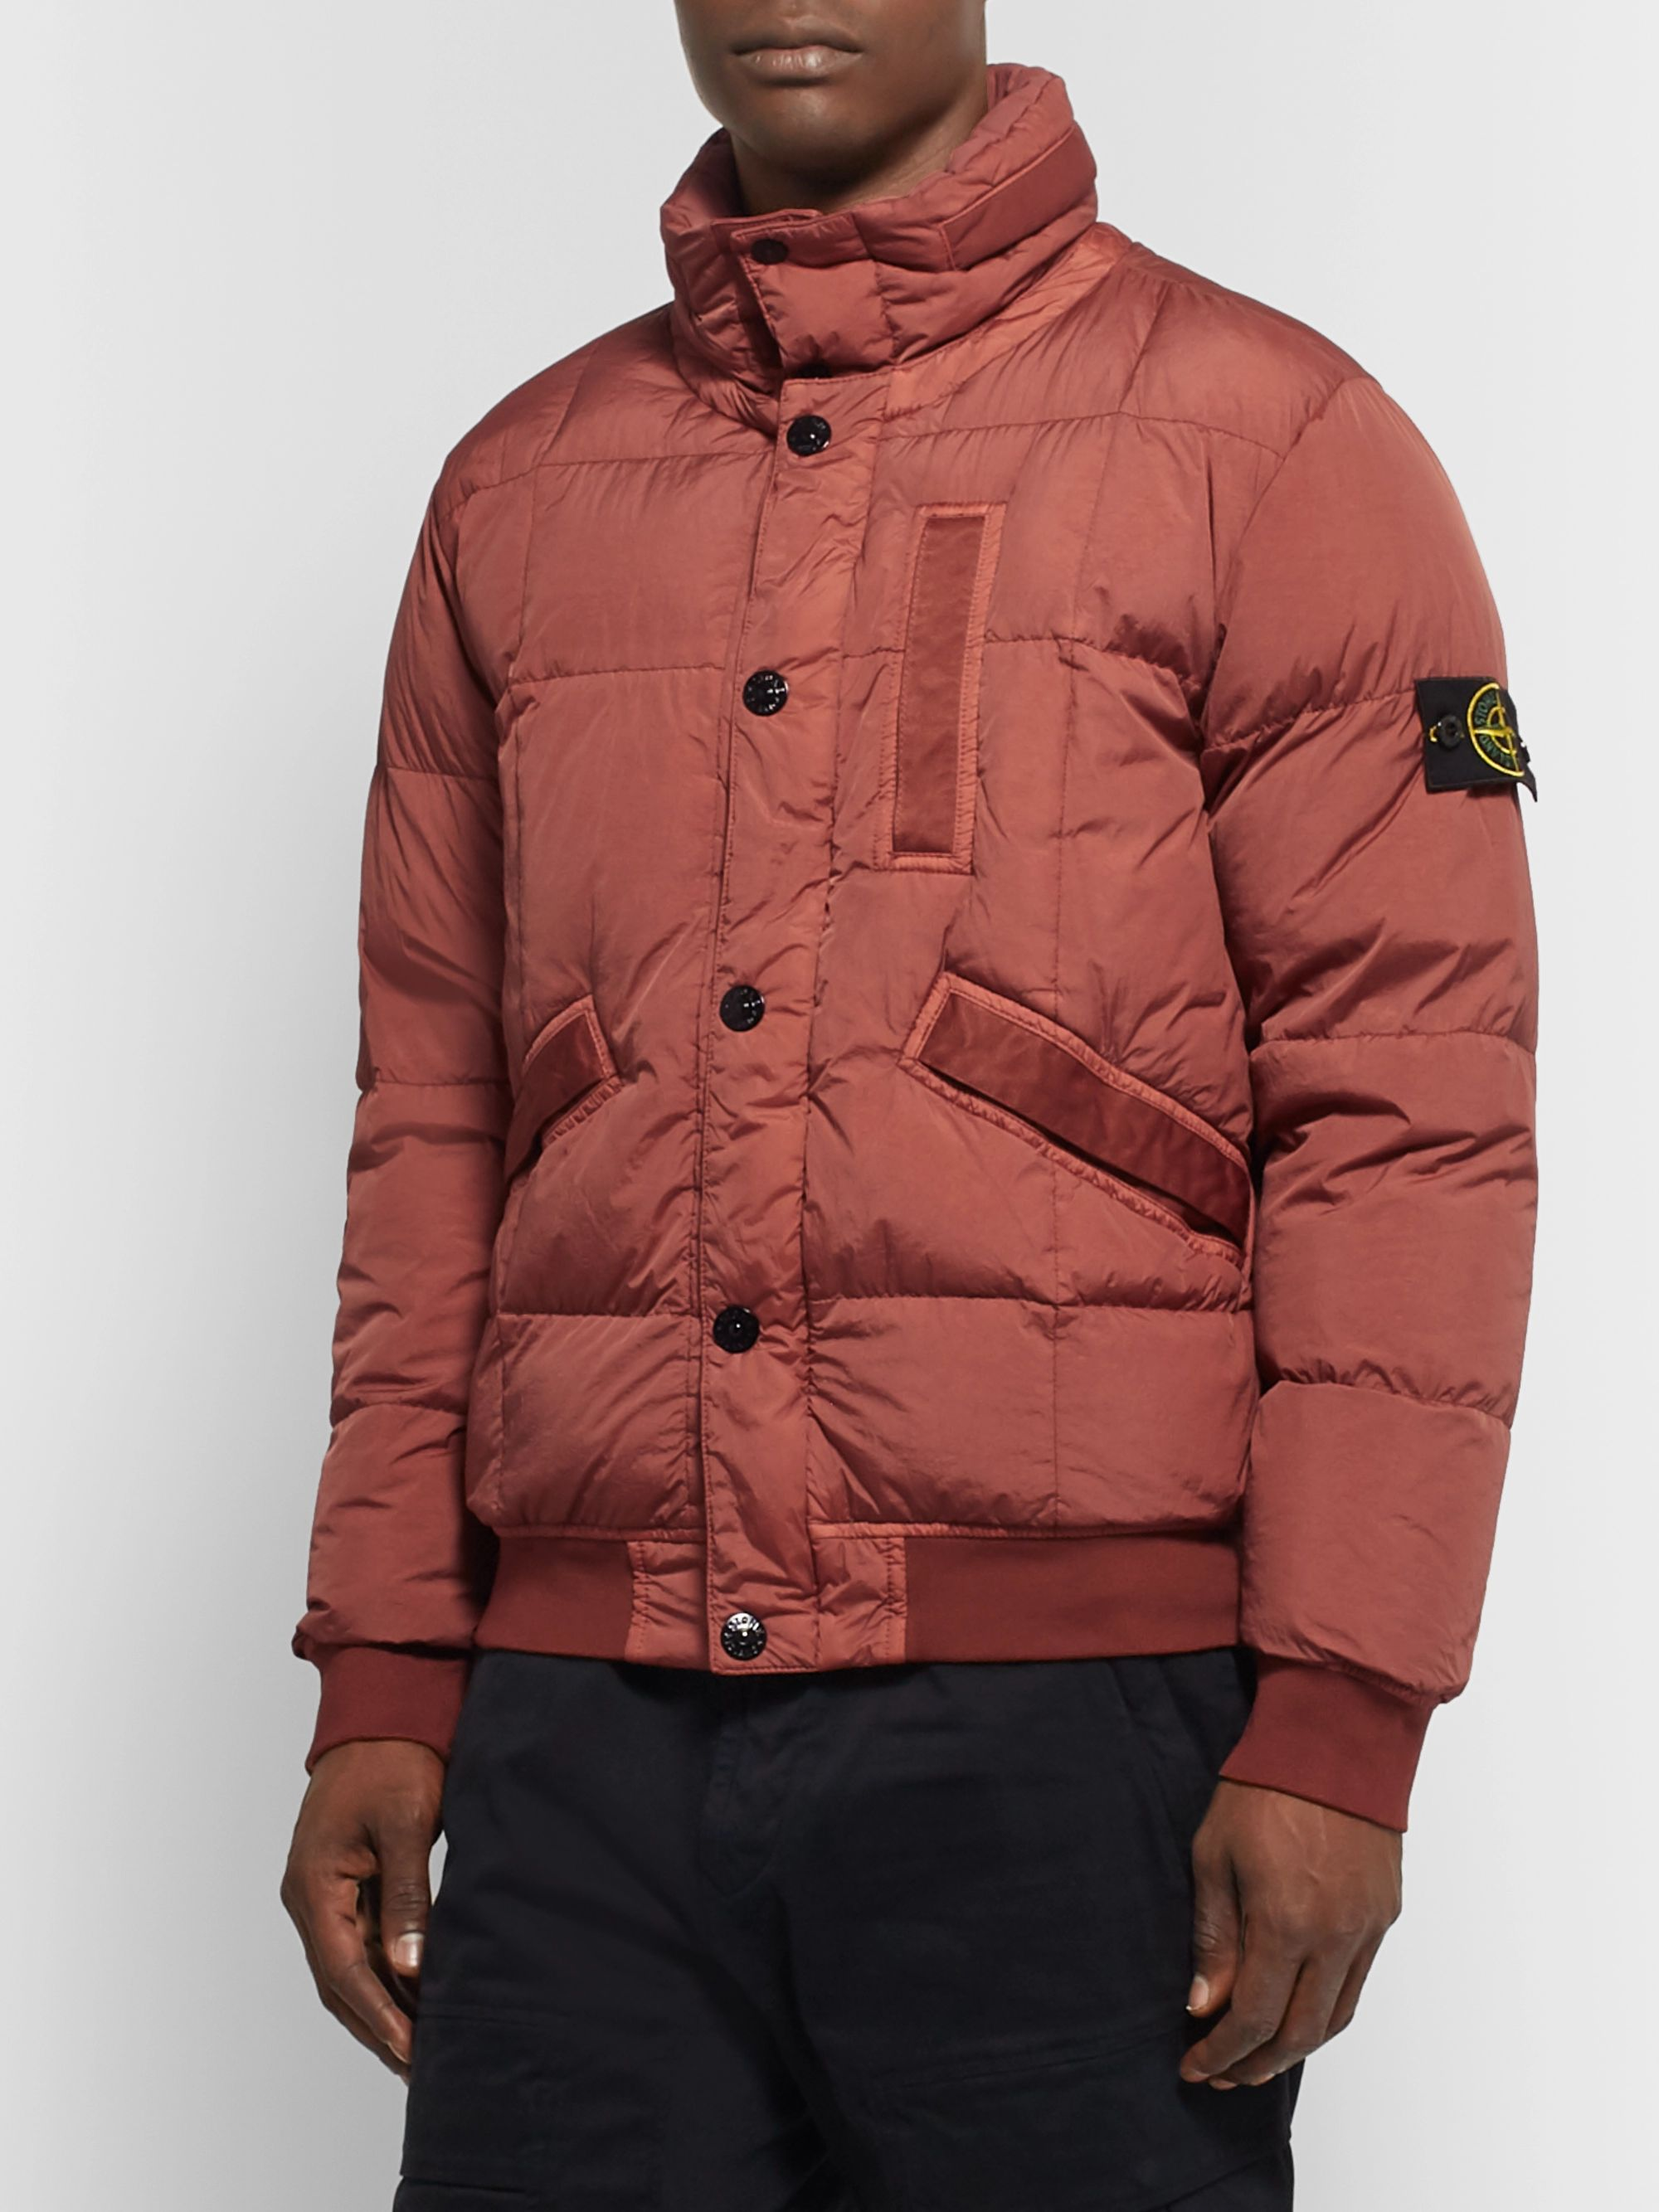 Stone Island Garment-Dyed Quilted Crinkle Reps Nylon Down Jacket